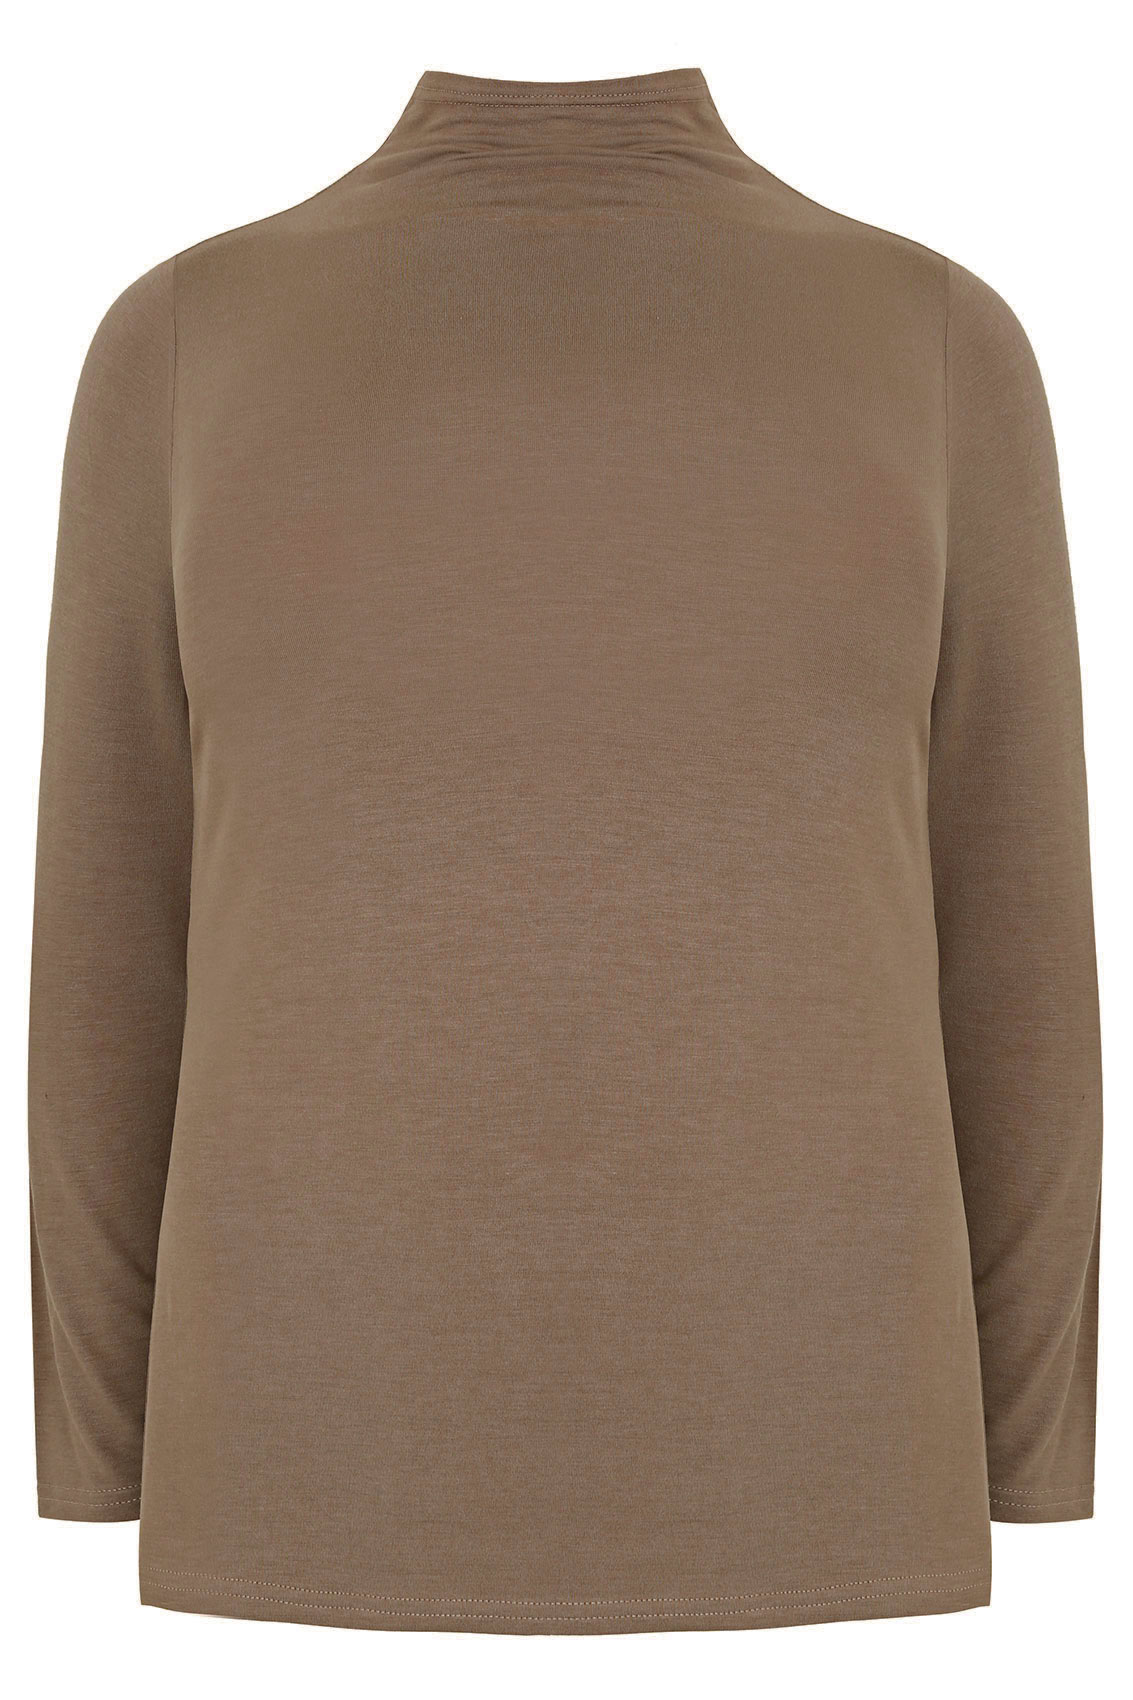 Taupe brown turtle neck long sleeved jersey top plus size 16 to 32 - Bruin taupe ...